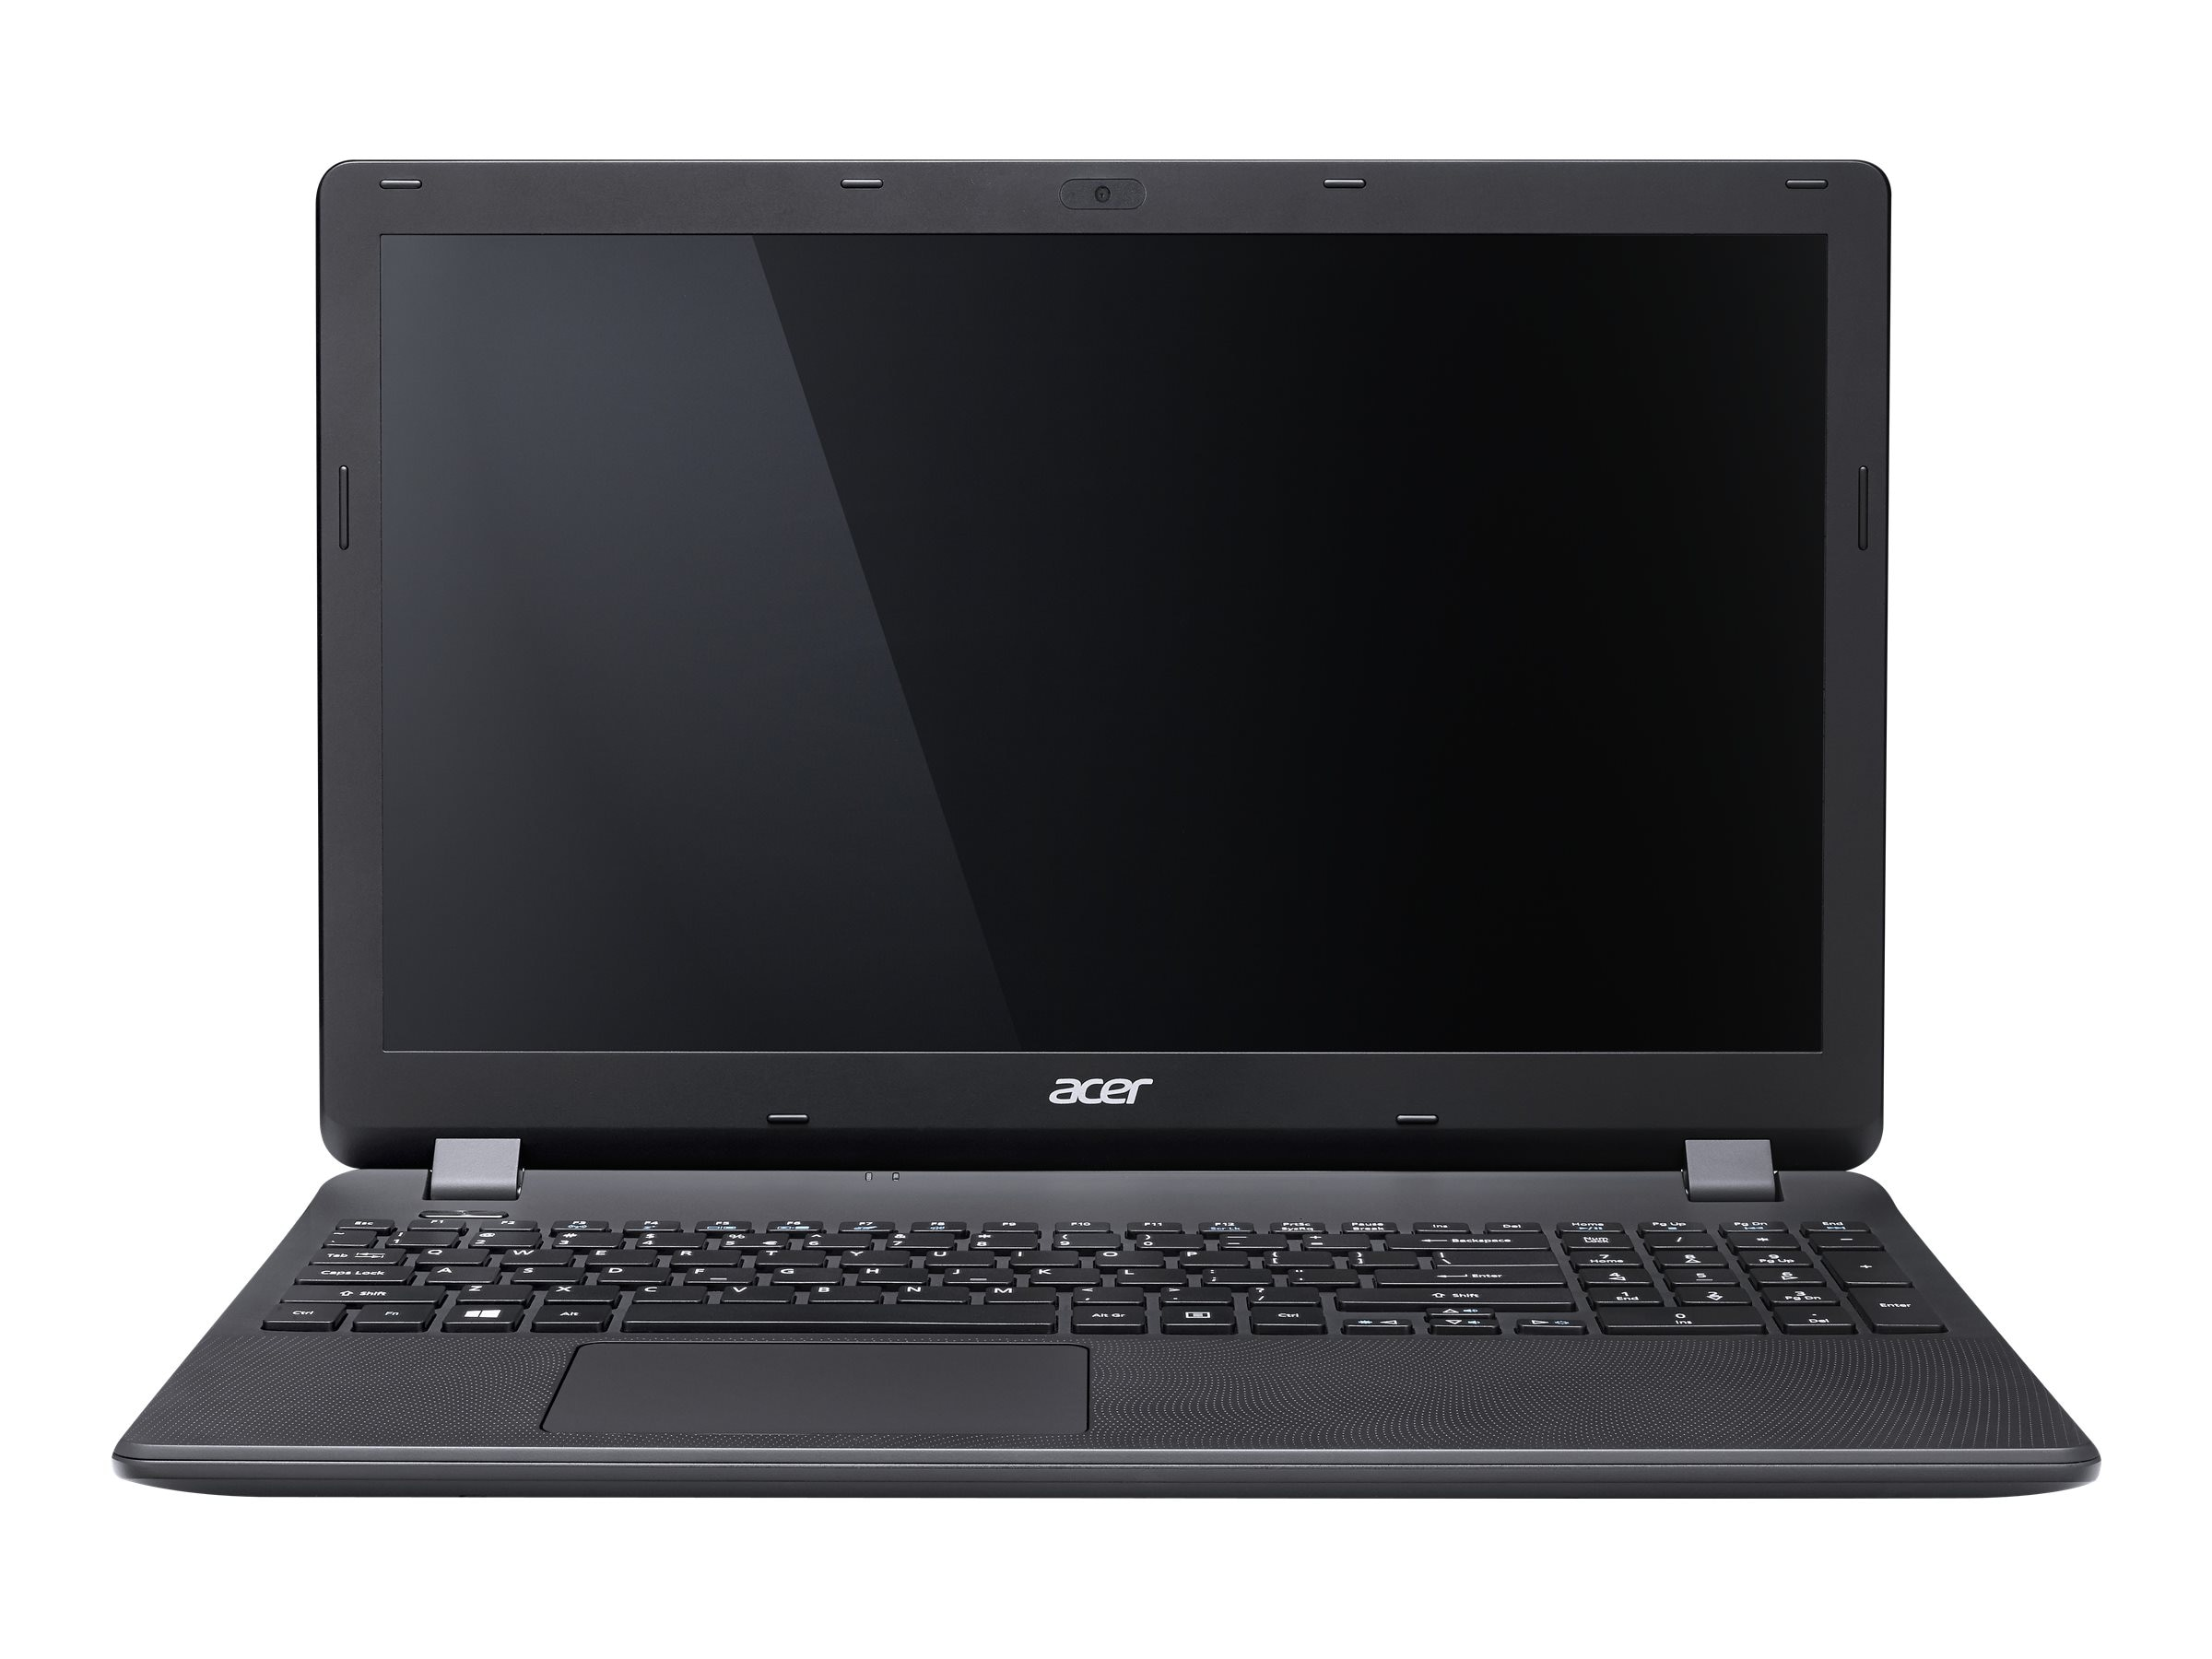 Acer NX.GCEAA.004 Image 4